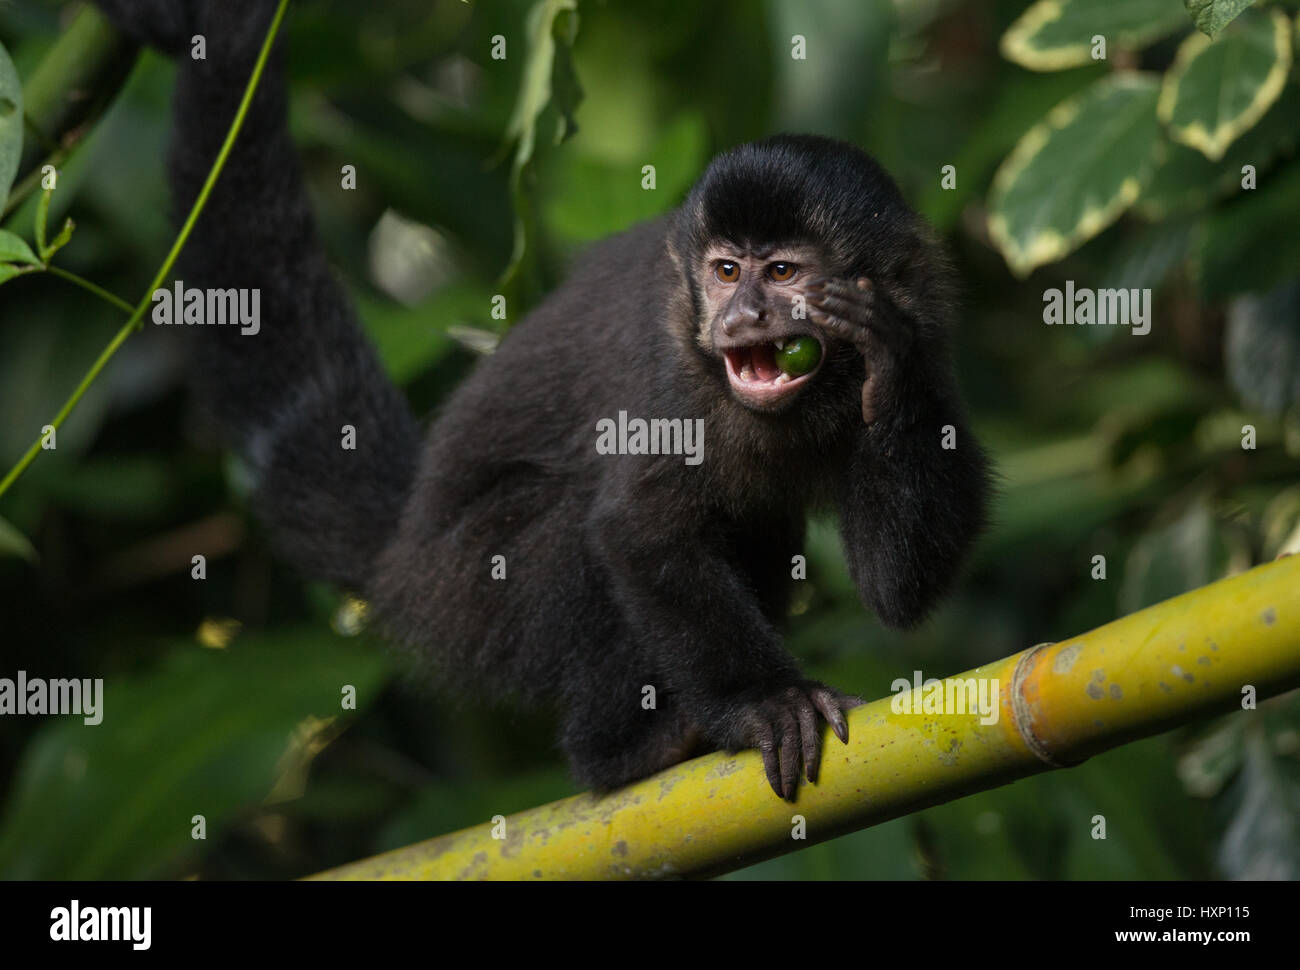 A Black Capuchin Monkey from the Atlantic Rainforest Stock Photo